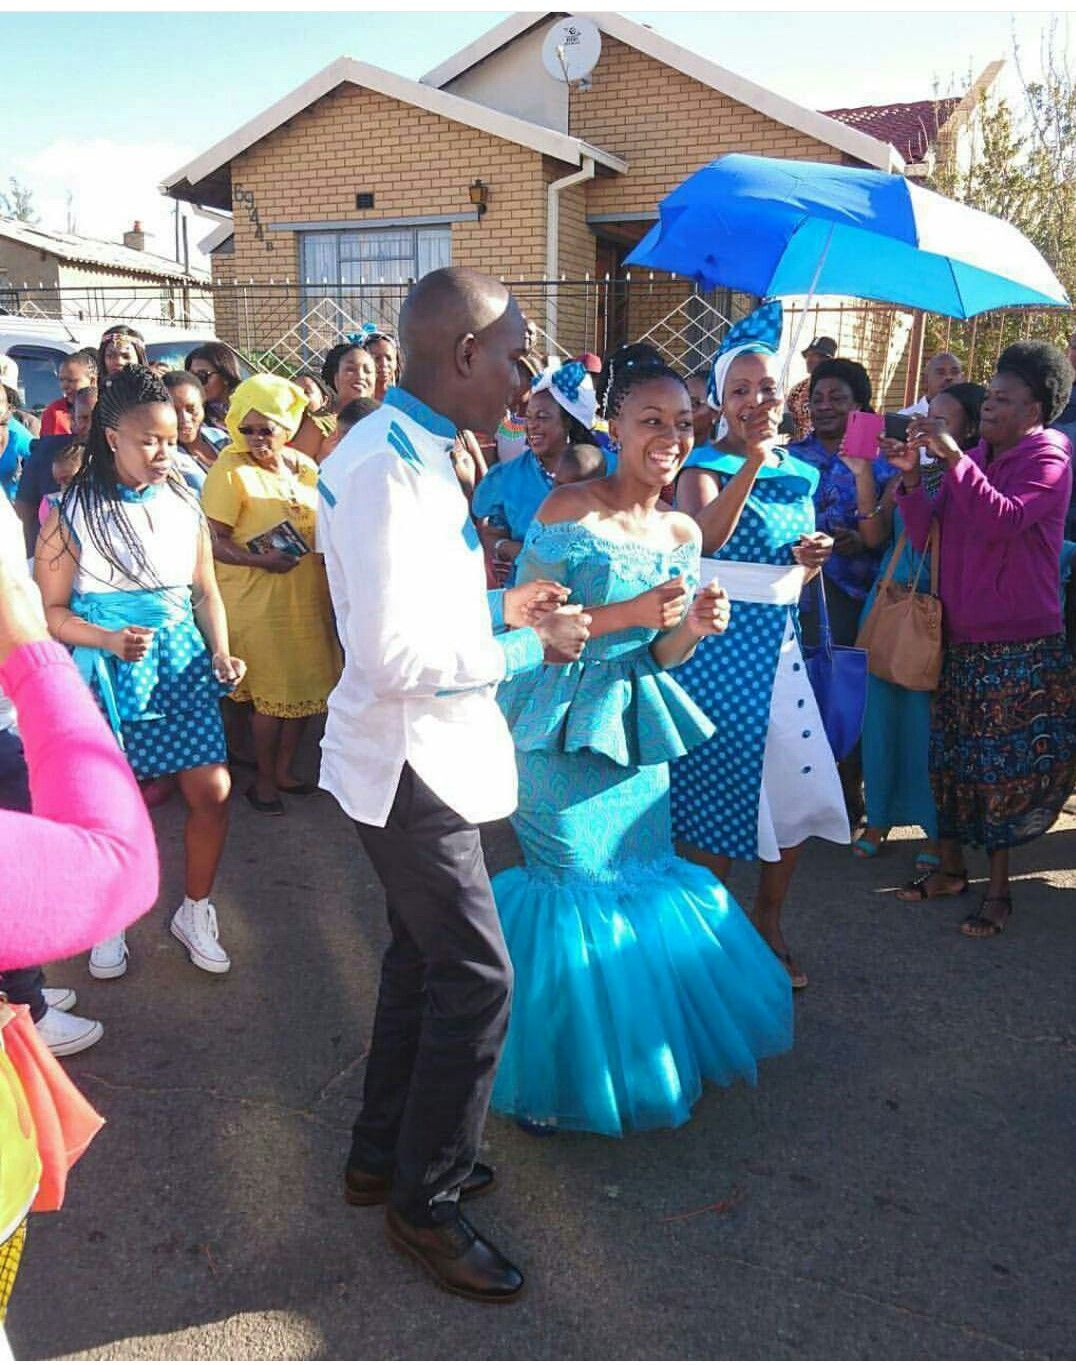 Pin by Regopotswe Modiselle on traditional wedding | Pinterest ...